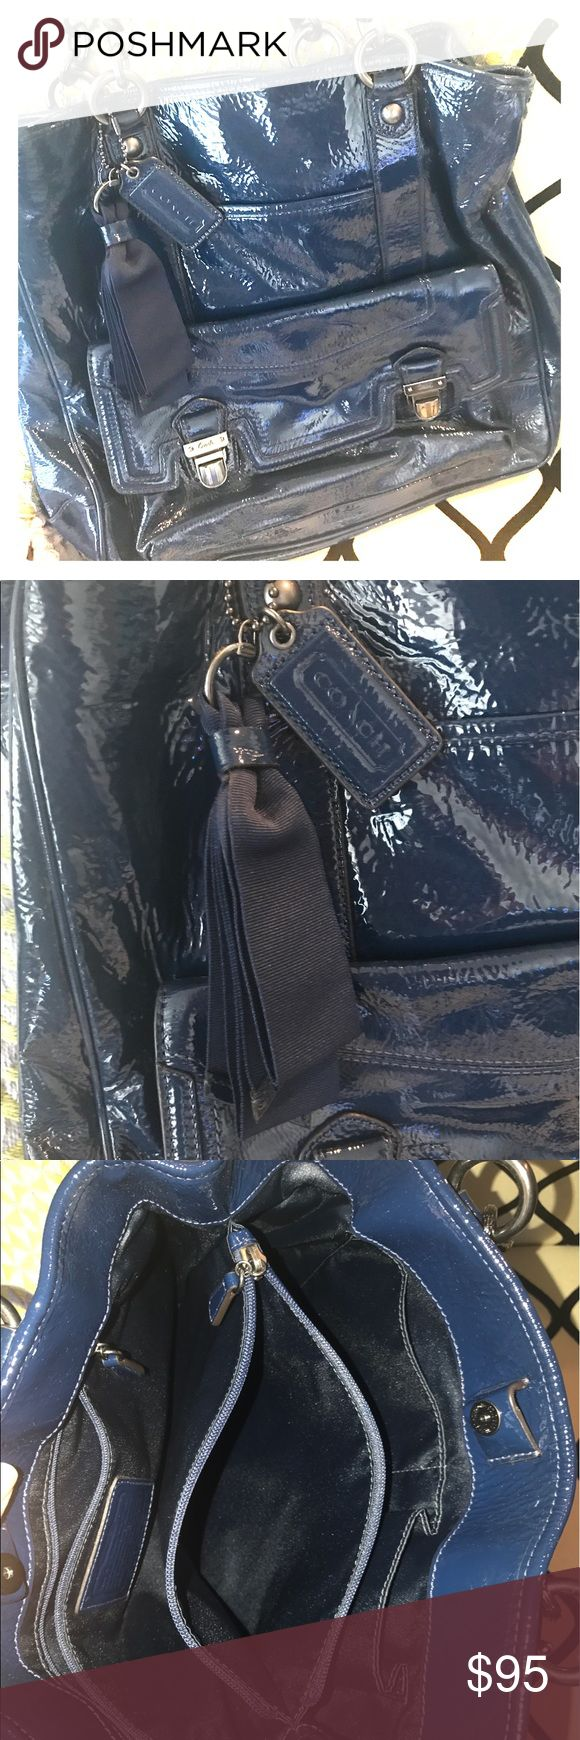 """Navy Blue COACH Hobo Bag Navy Blue Coach with no signs of wear. This purse is really nice with three (3) large pockets inside with the middle being a zipper. It also has wide outside pocket with snap buttons and an inside phone pocket. The detail from the pewter color chains which hang from the straps to the shiny navy blue color make this purse a """"looker"""".  Type:Hobos Measurements:13""""L x 21""""H x 13""""W Color:Navy Brand:Coach Fabric:Navy Pat and Blue Leather Style/Collection:G1169-18717 Style…"""